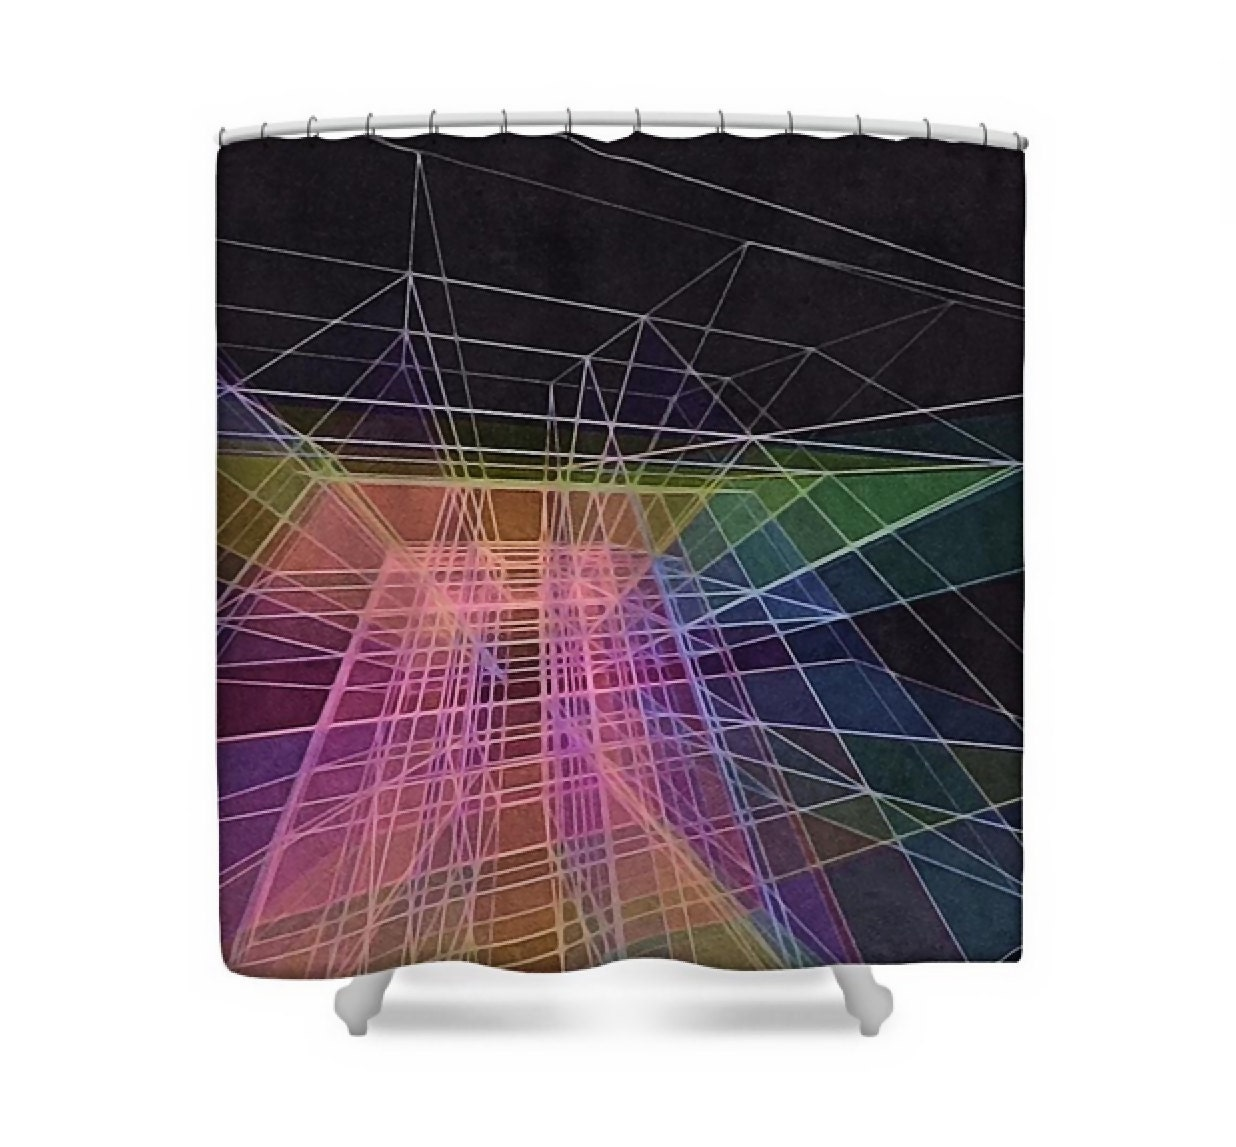 Modern Abstract Art Fabric Shower Curtain Multicolor Rainbow On Plum Purple Contemporary Bath Decor Prism Of Mind By Susan Maxwell Schmidt